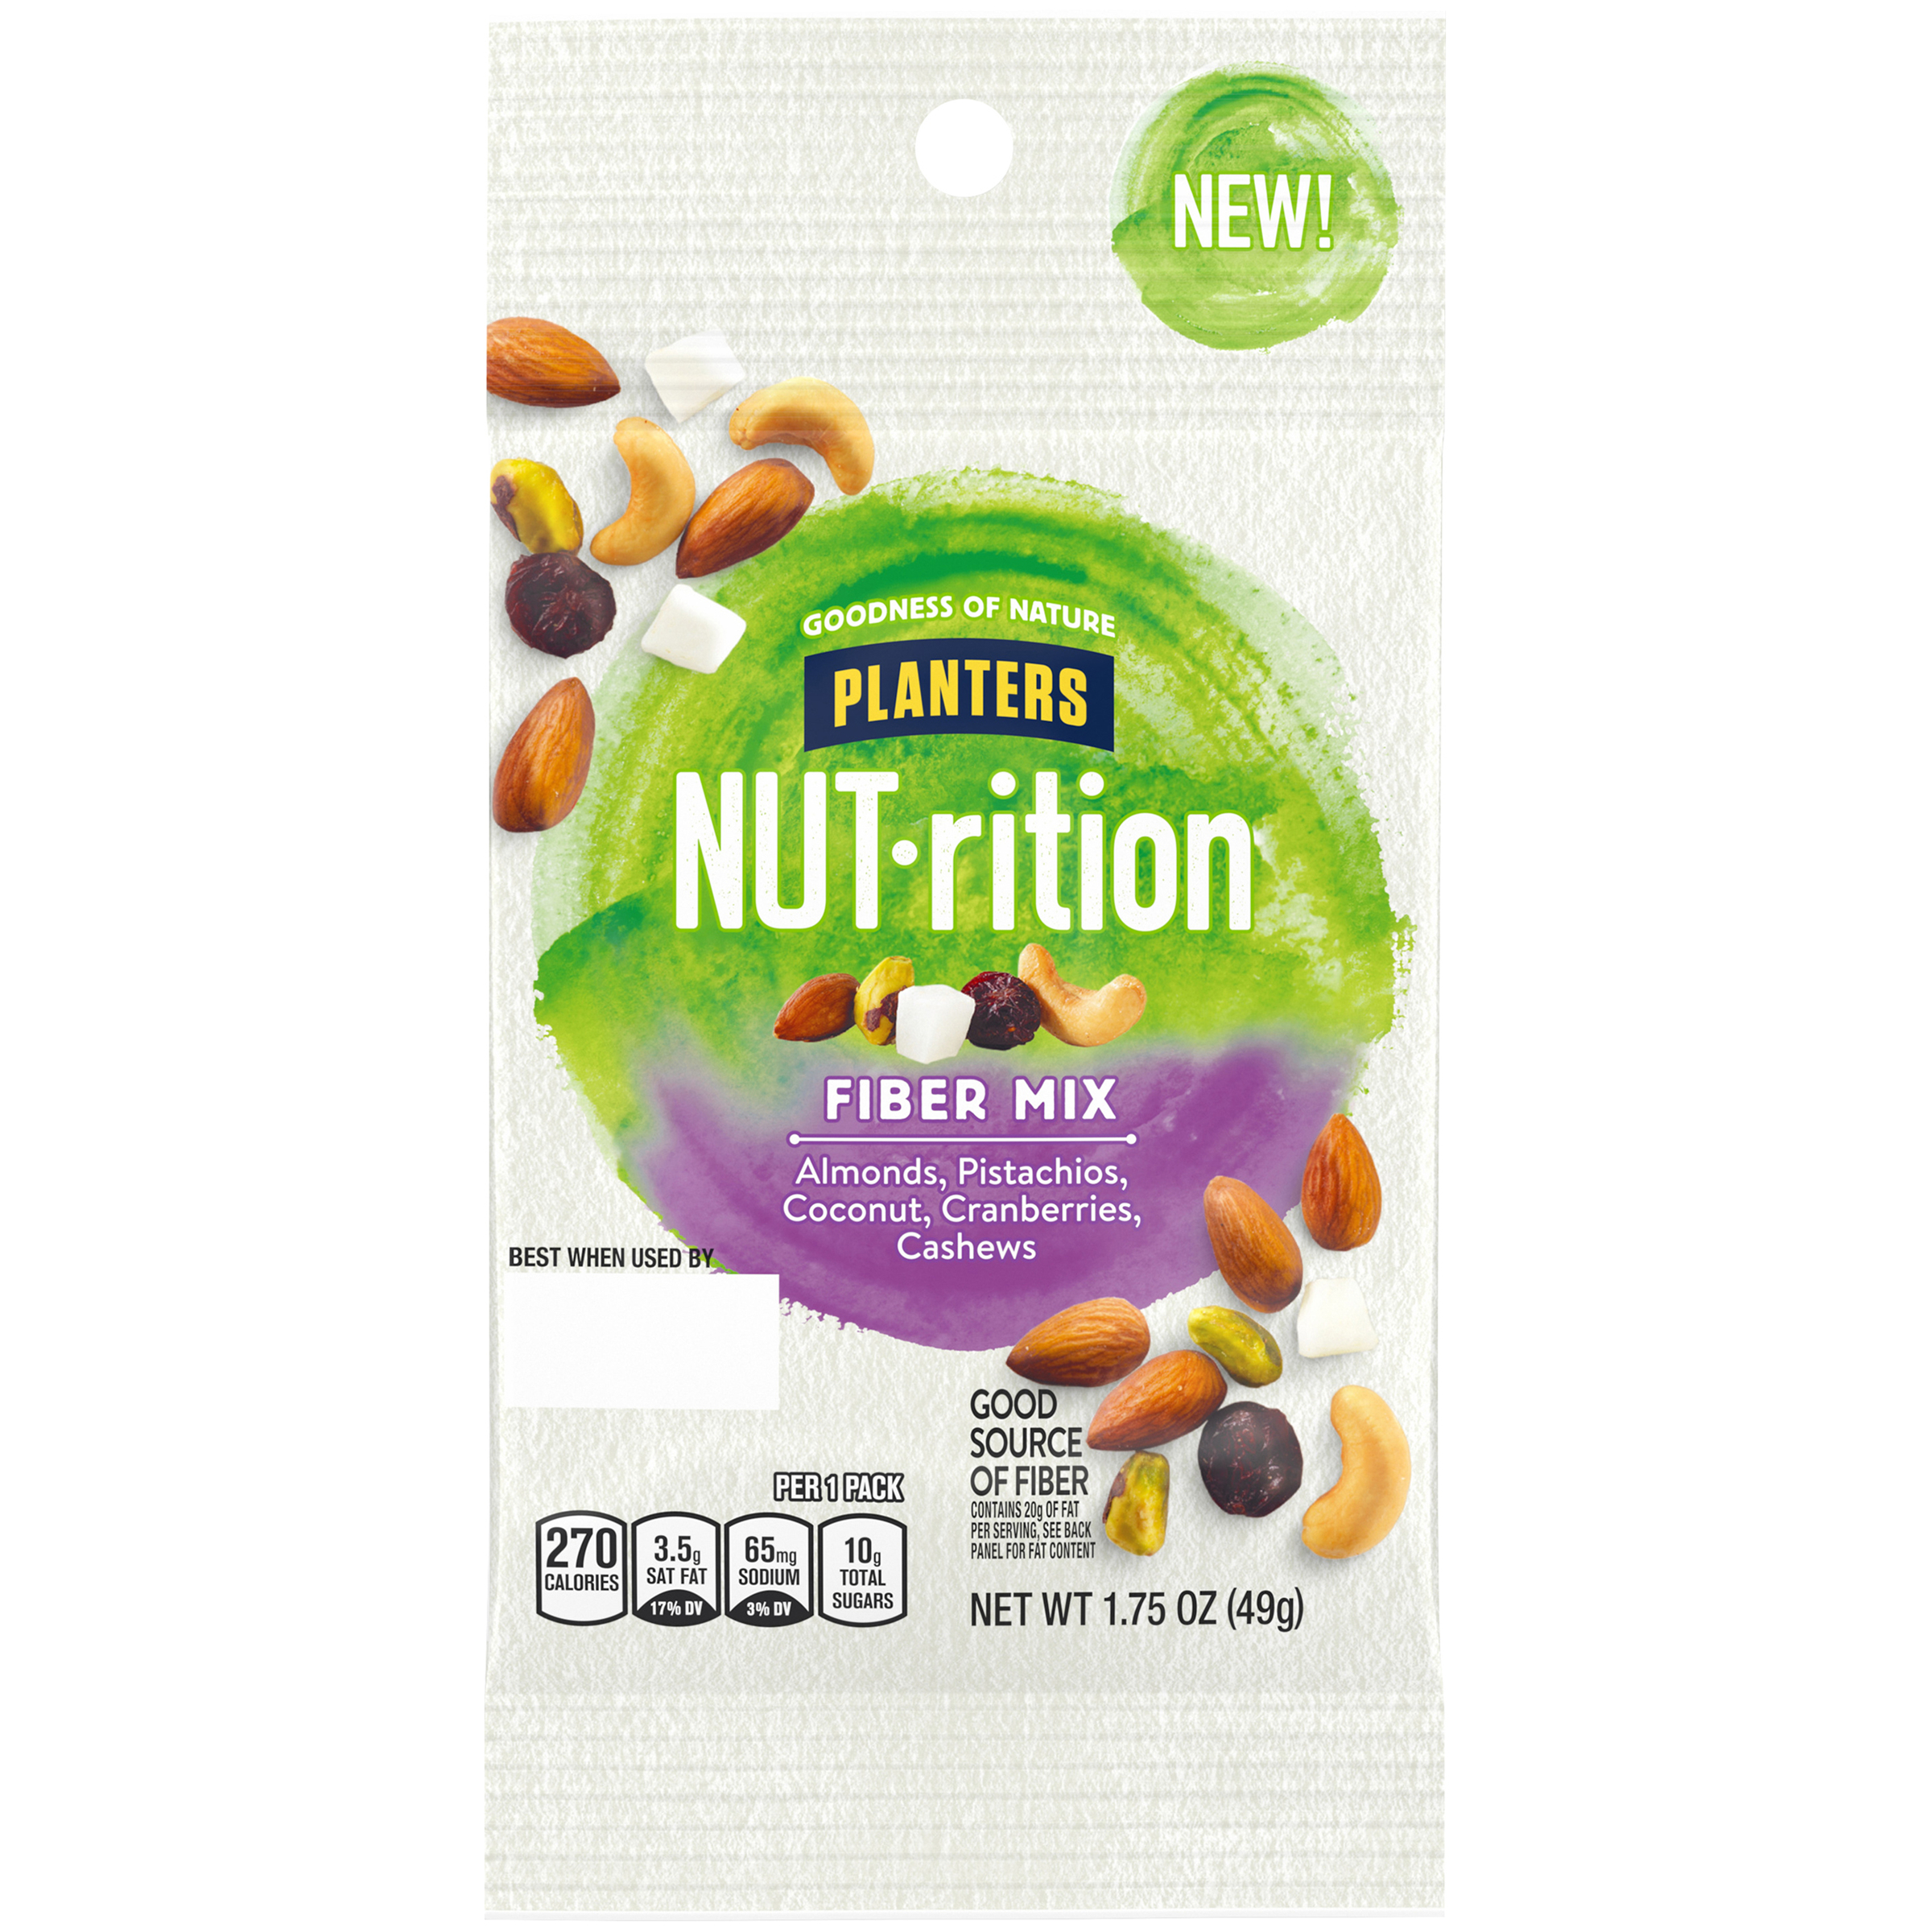 NUTrition Fiber Mix Mixed Nuts, 1.7 oz Pouch image